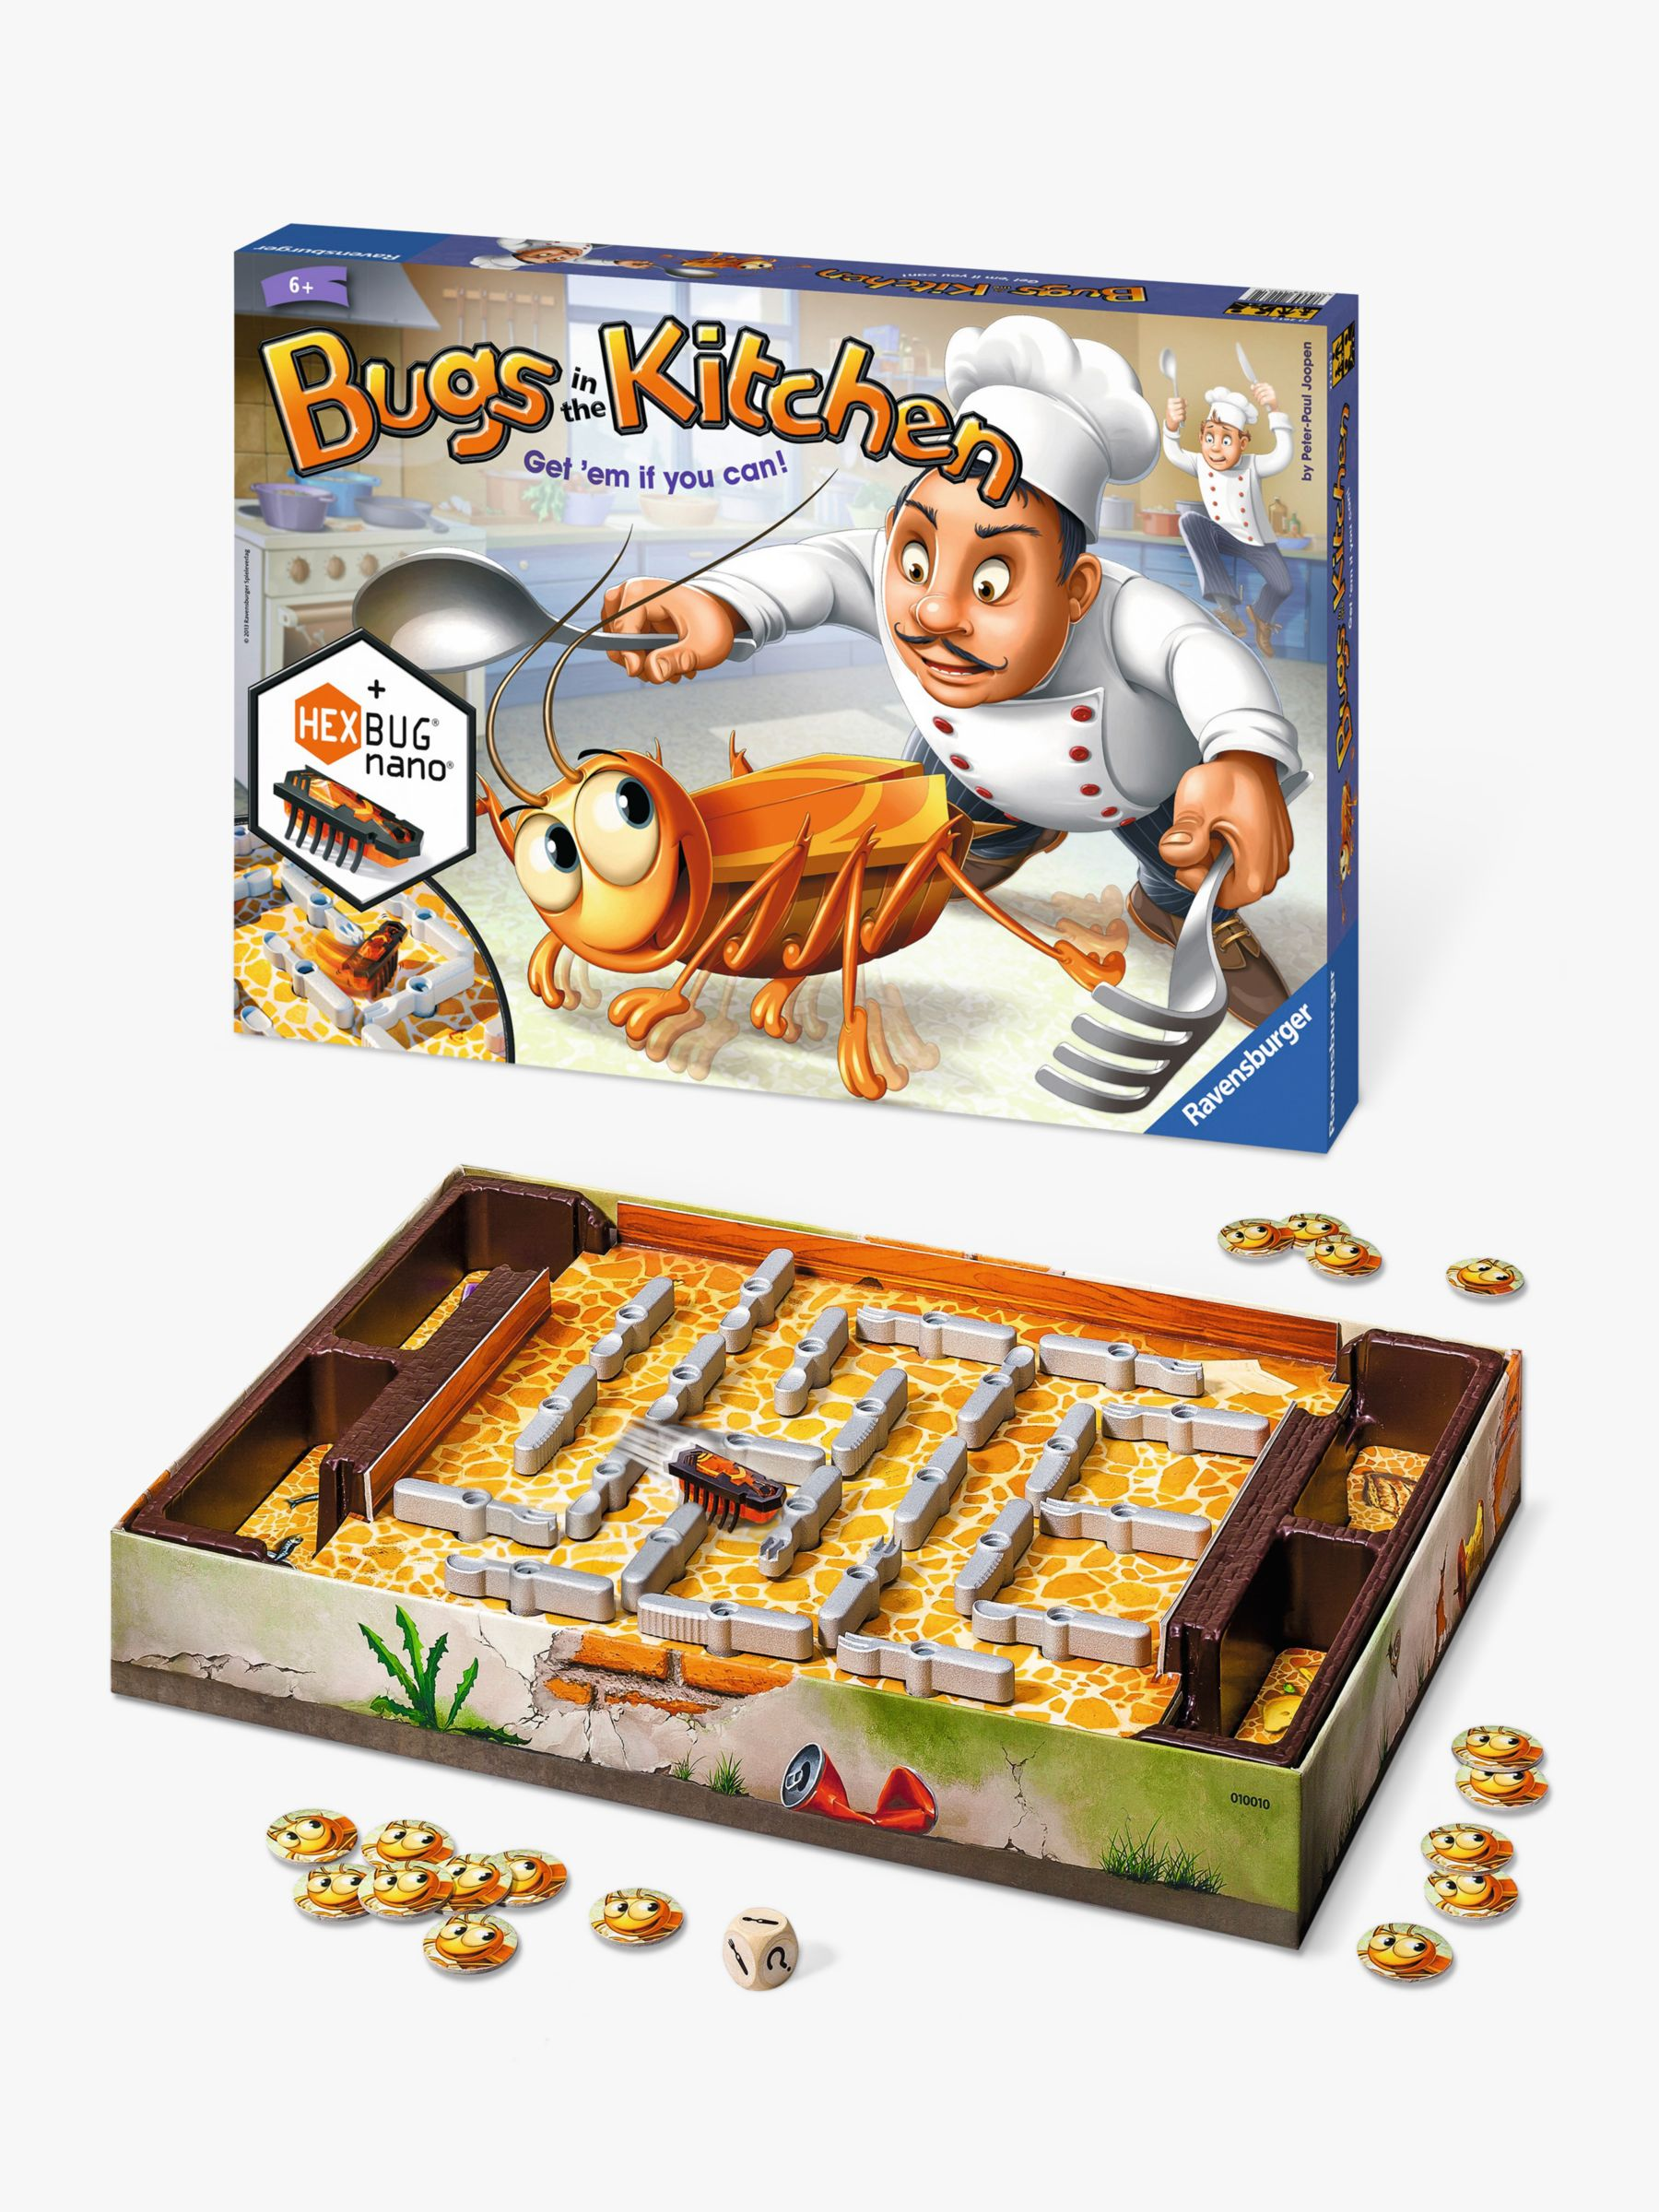 Ravensburger Ravensburger Bugs In The Kitchen Game with HEXBUG nano